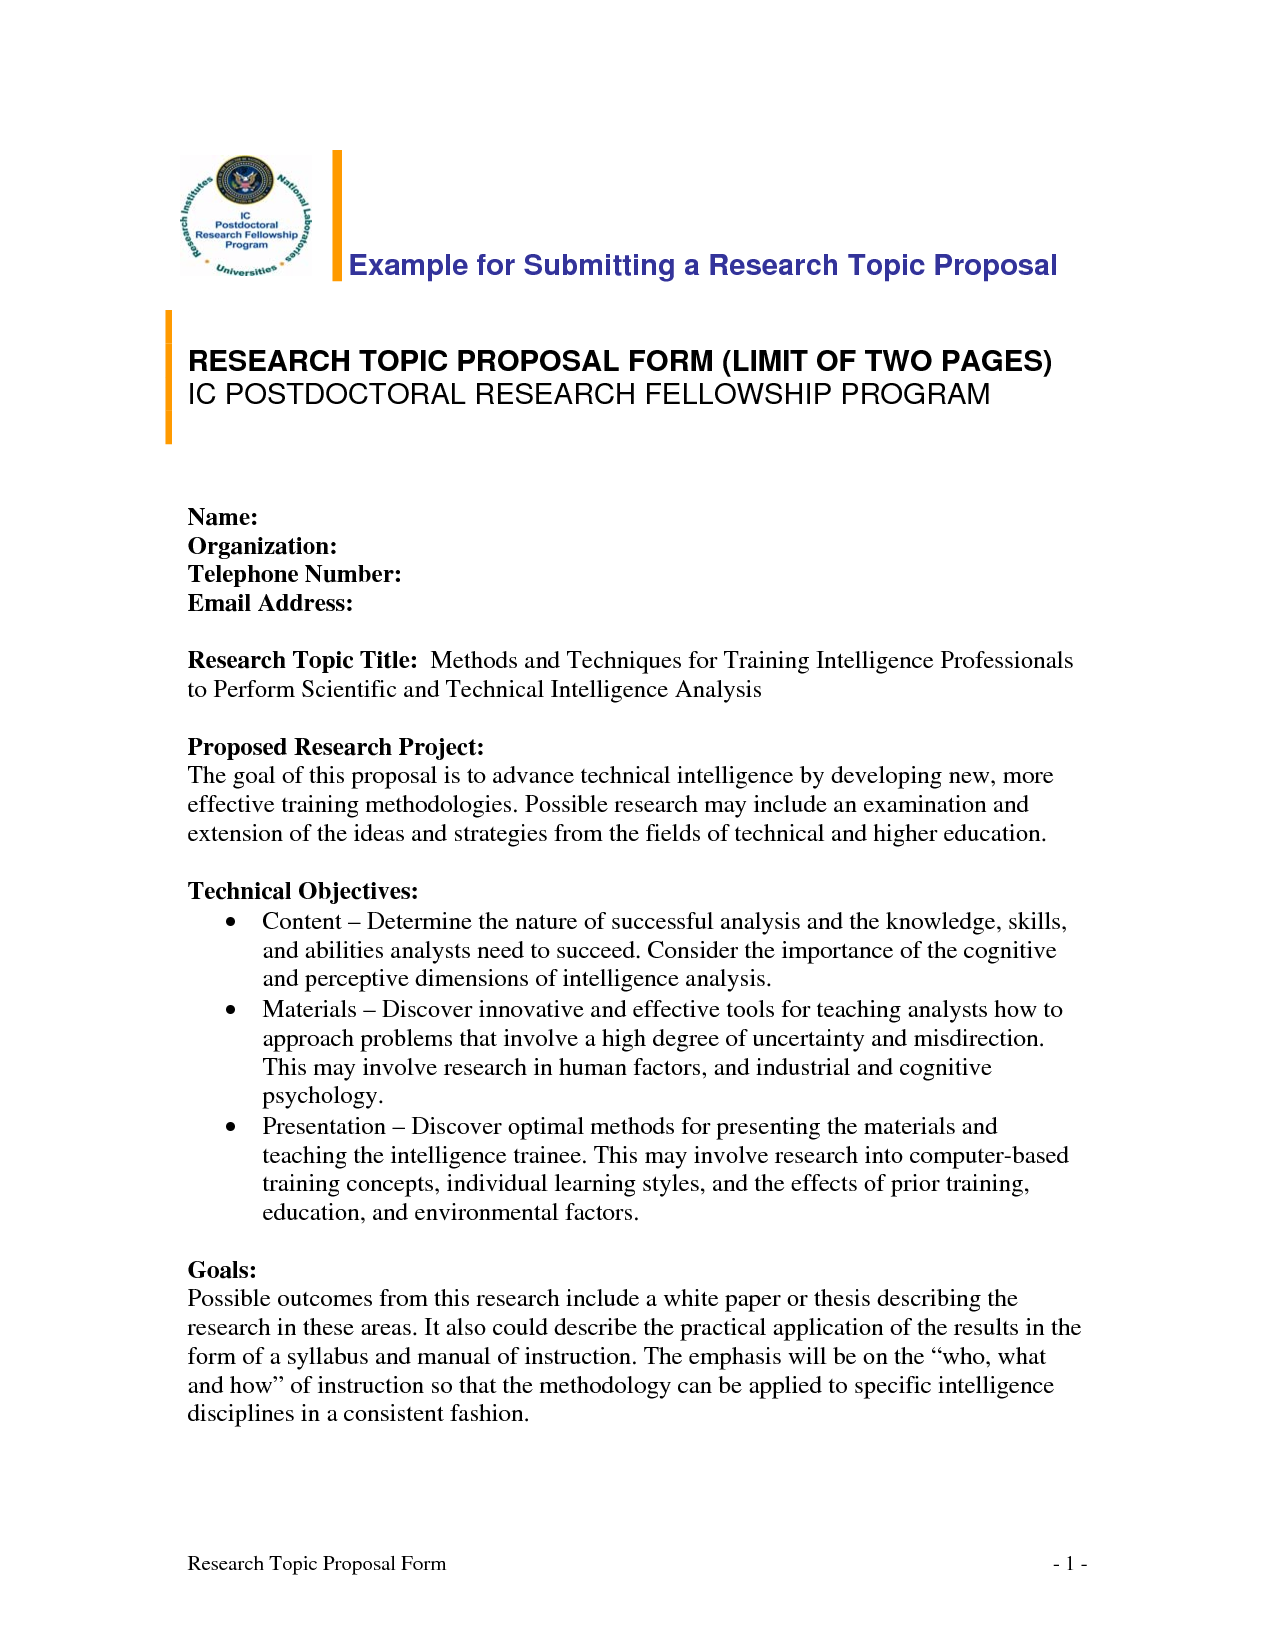 009 Awesome Collection Of Possible Research Proposal Topics Amazing Sample Science Paper Essay Example For Unbelievable An Interesting Expository Full